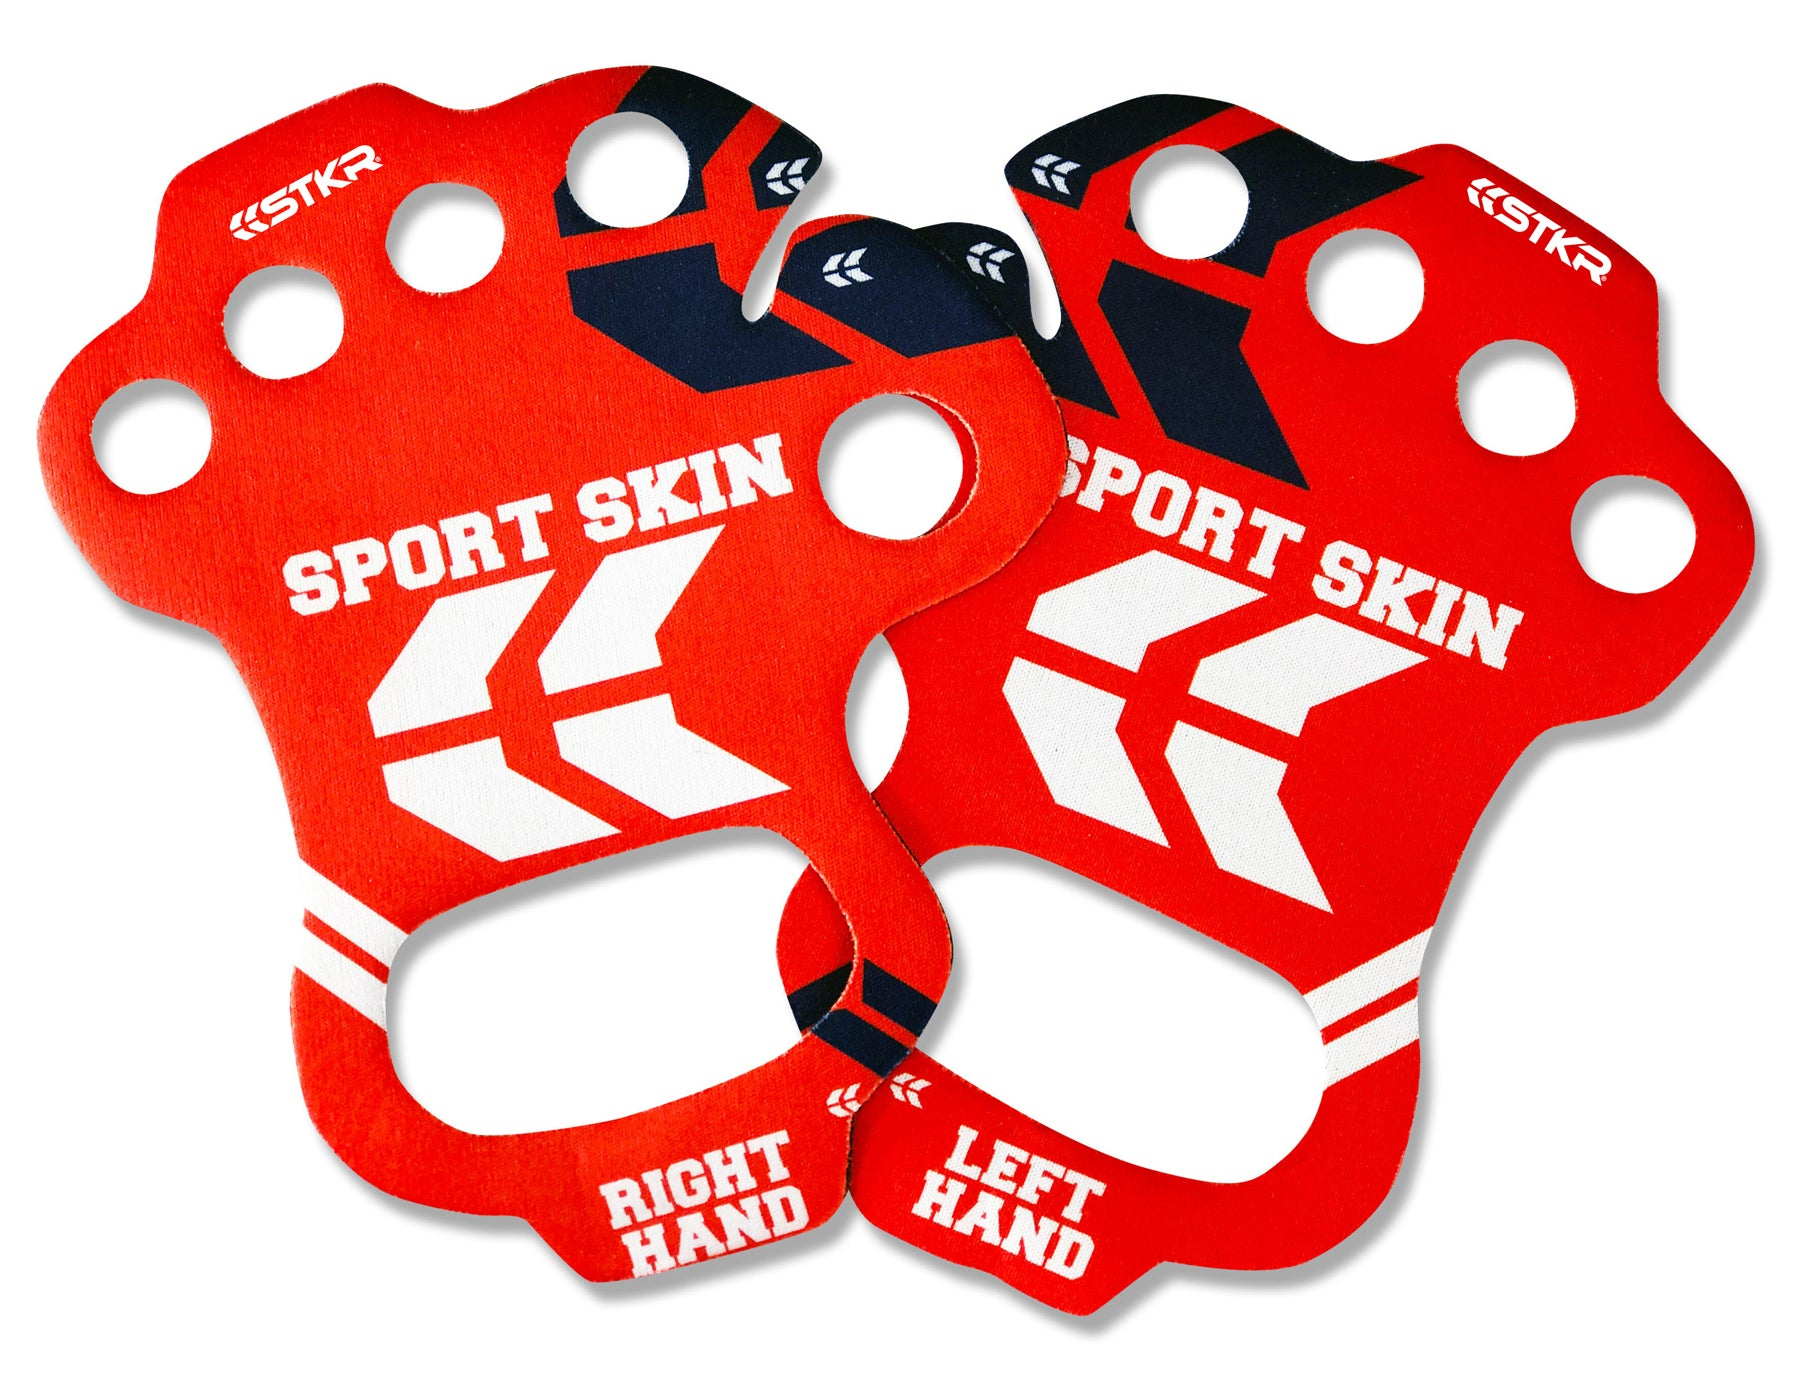 STKR Concepts Sport Skin pair included in packaging